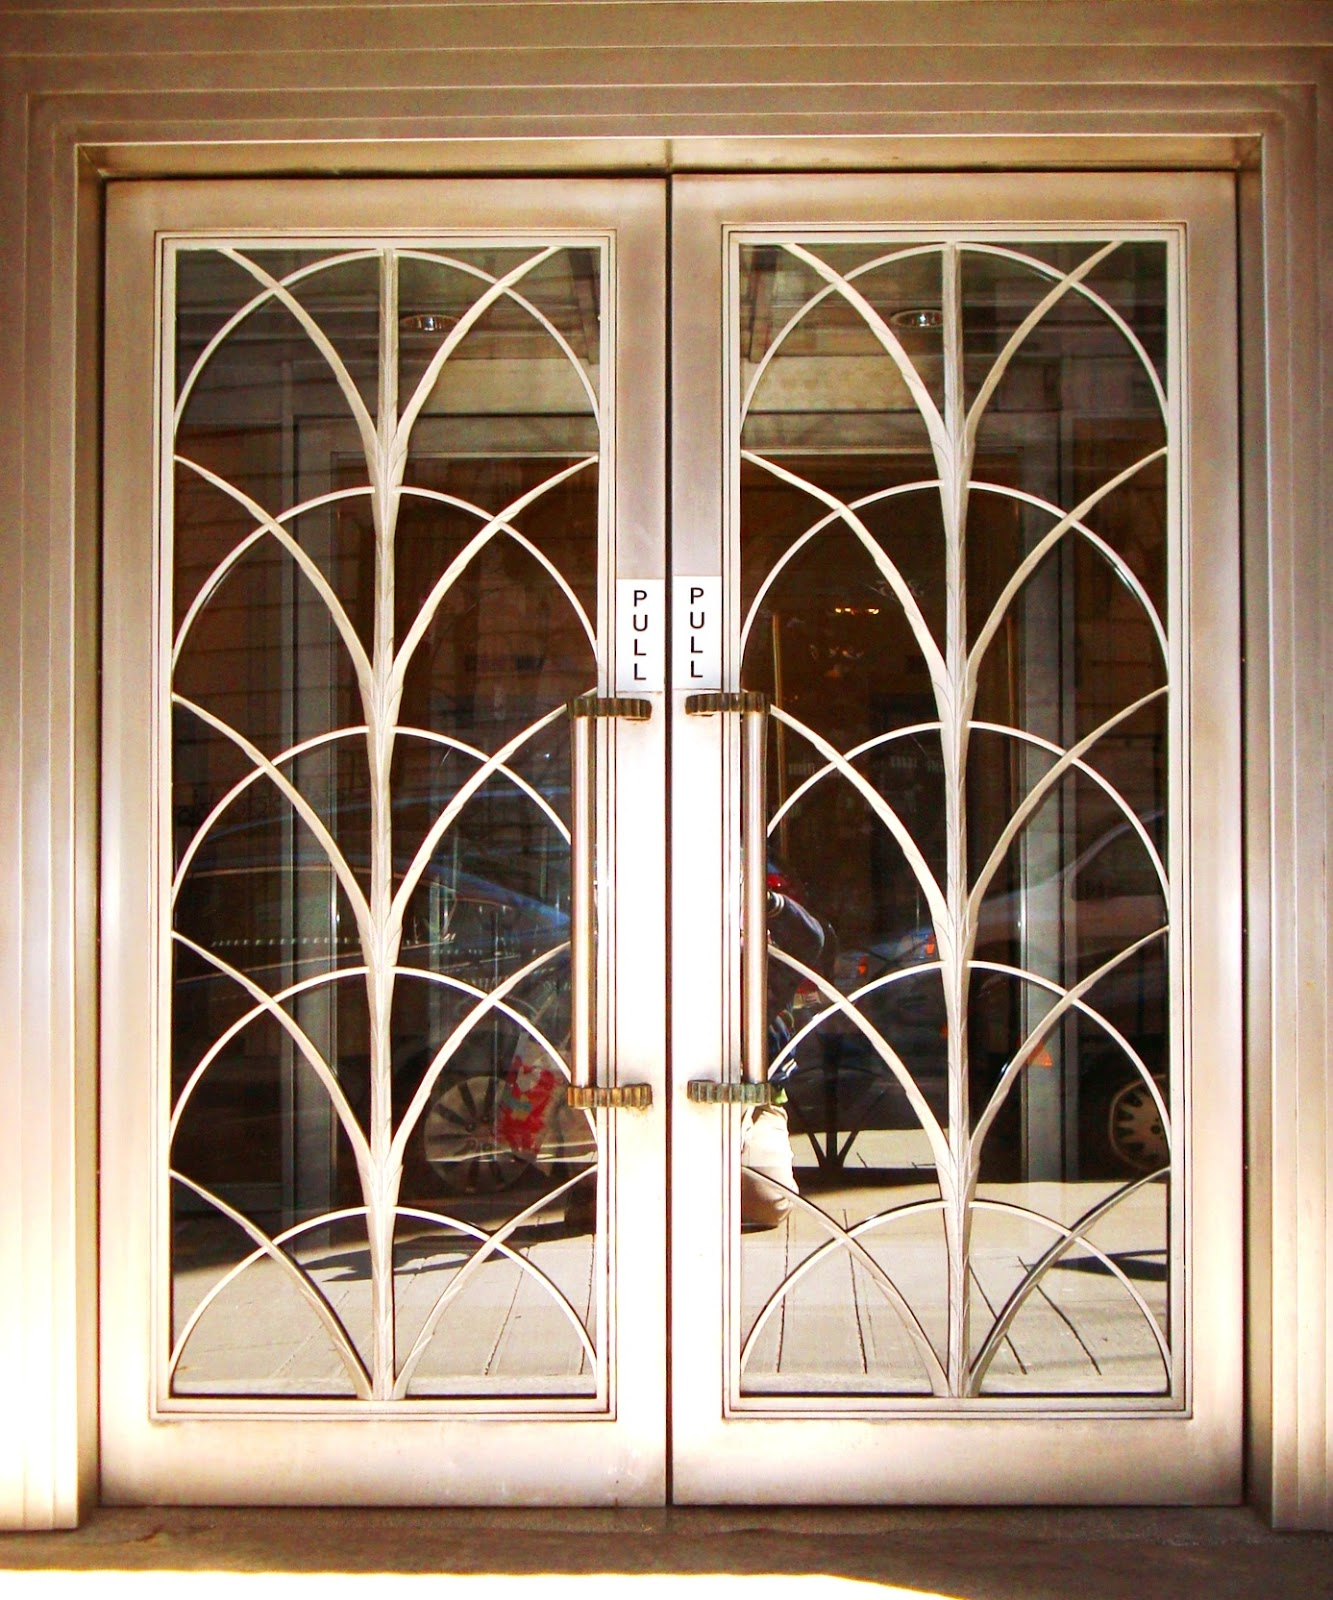 David cobb craig art deco doors in n y c for Art deco interior doors home